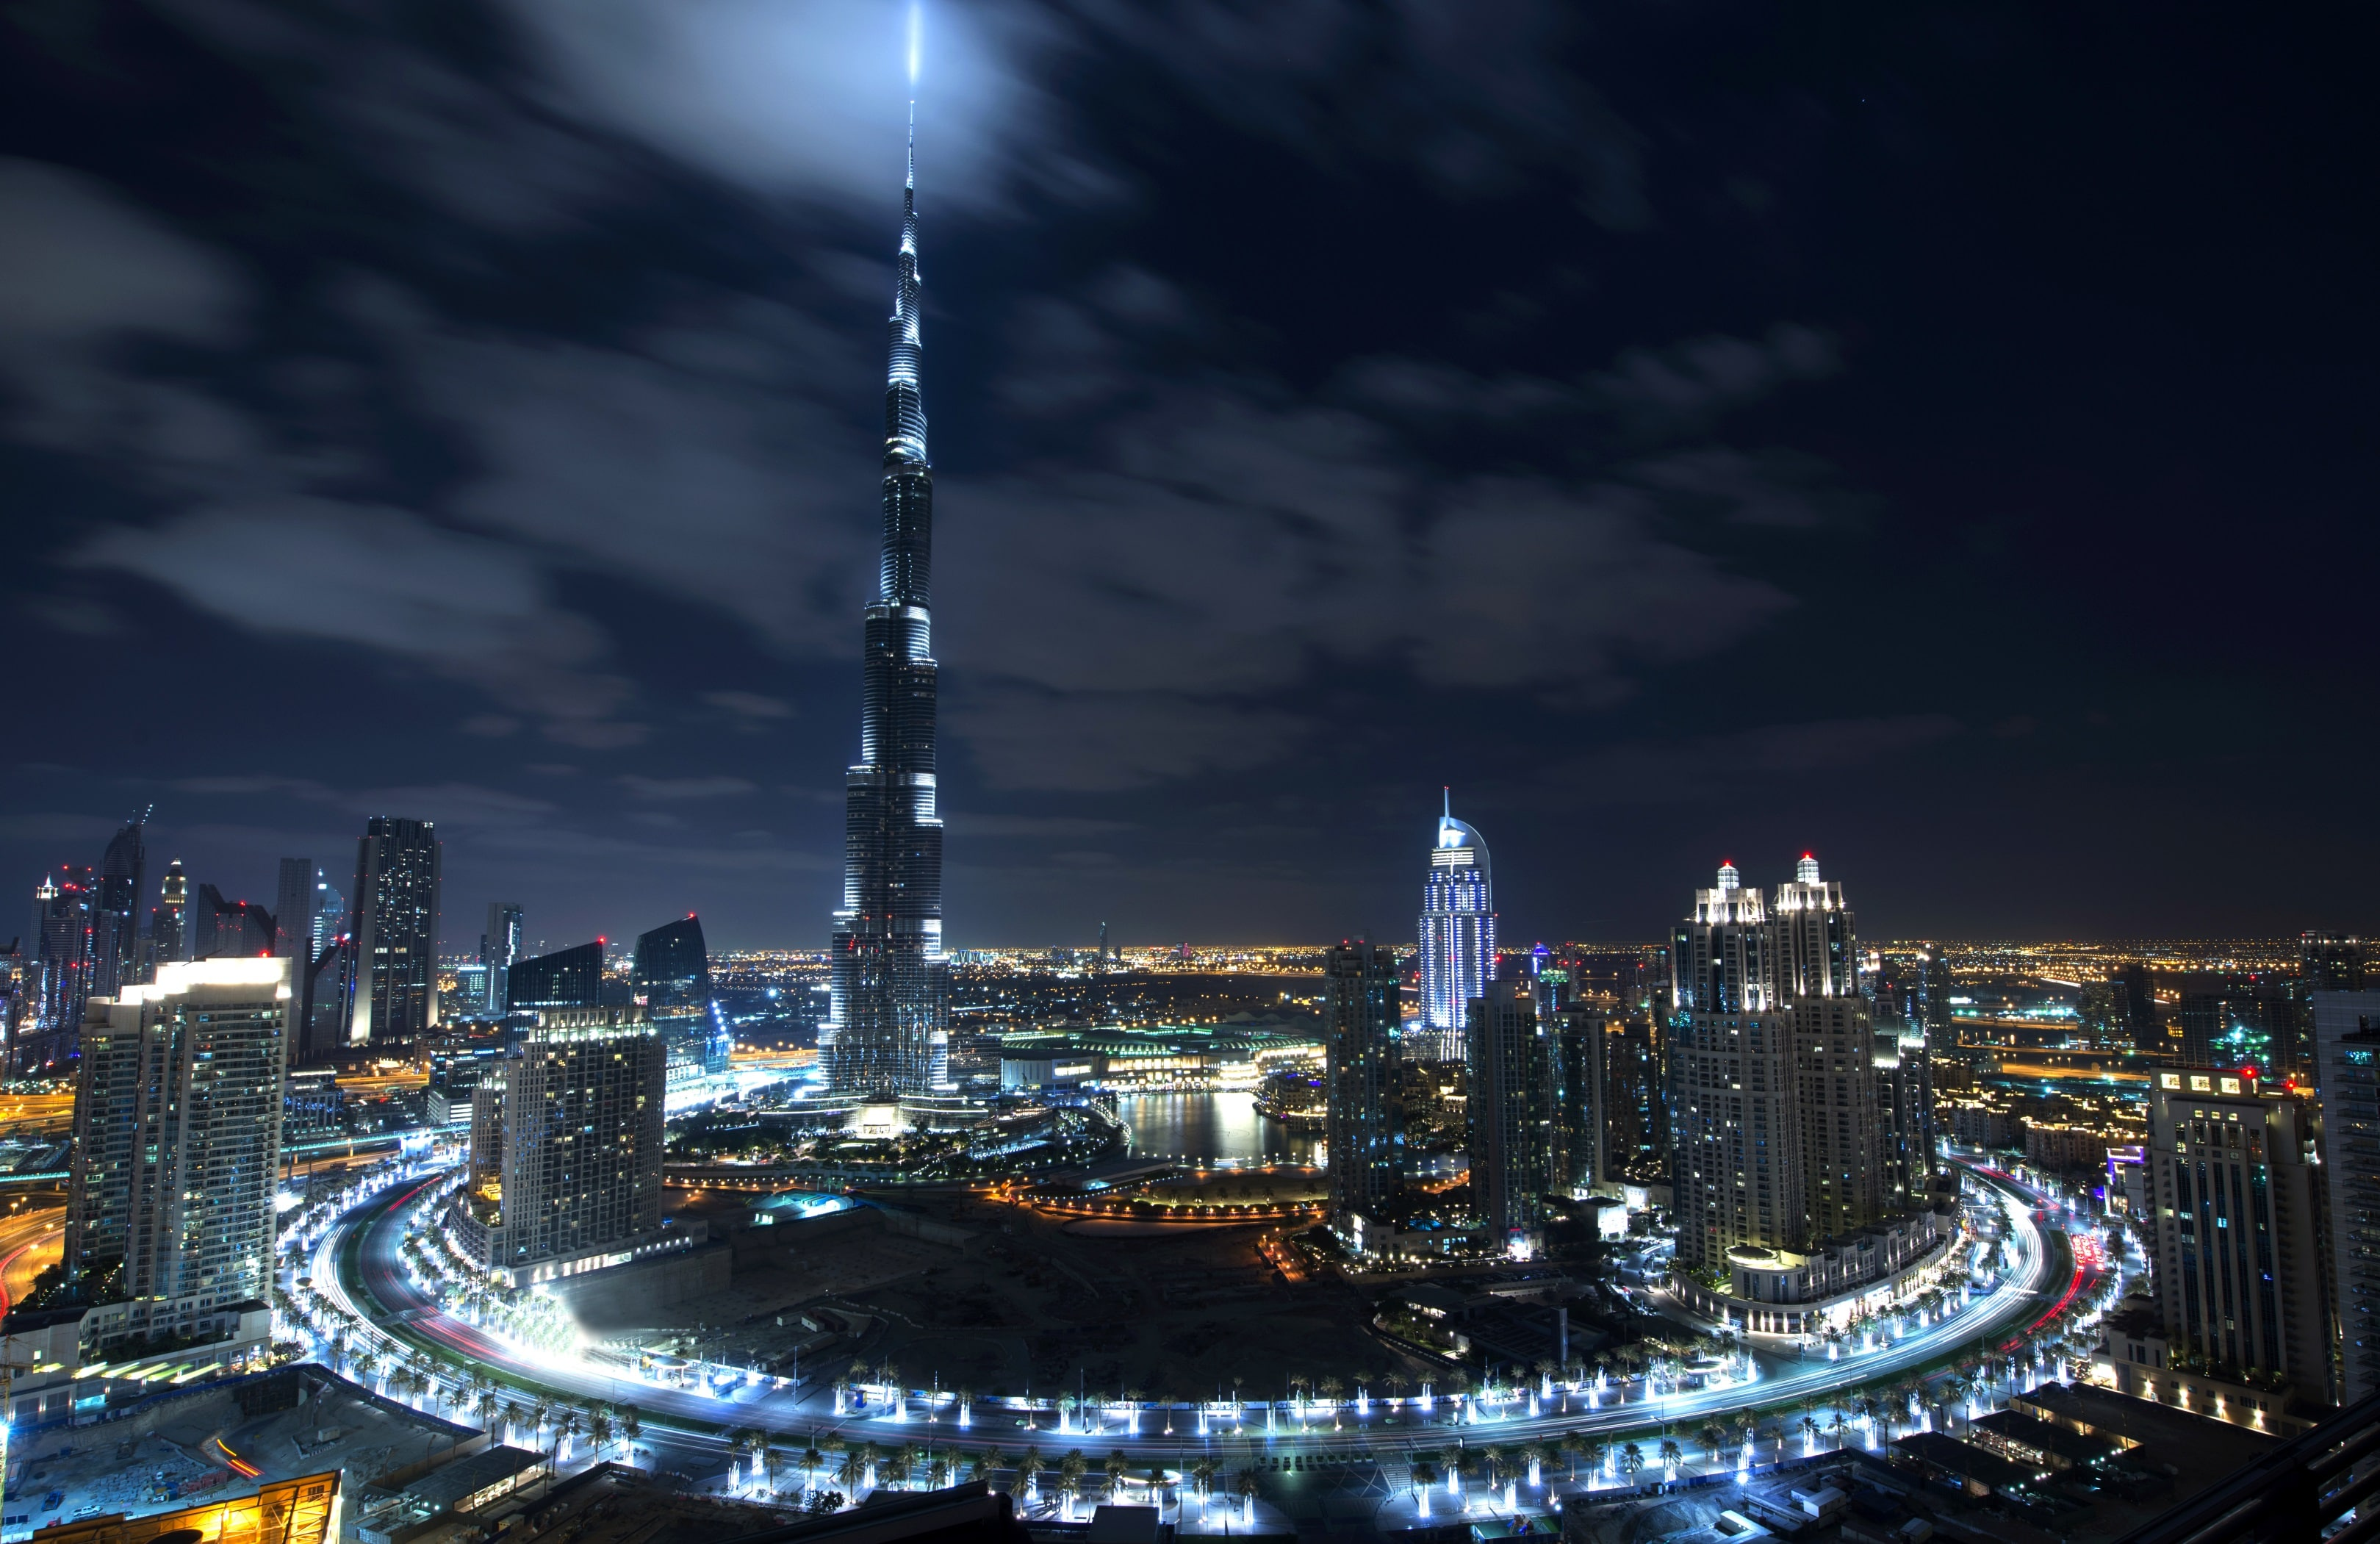 Dubai Desktop wallpapers